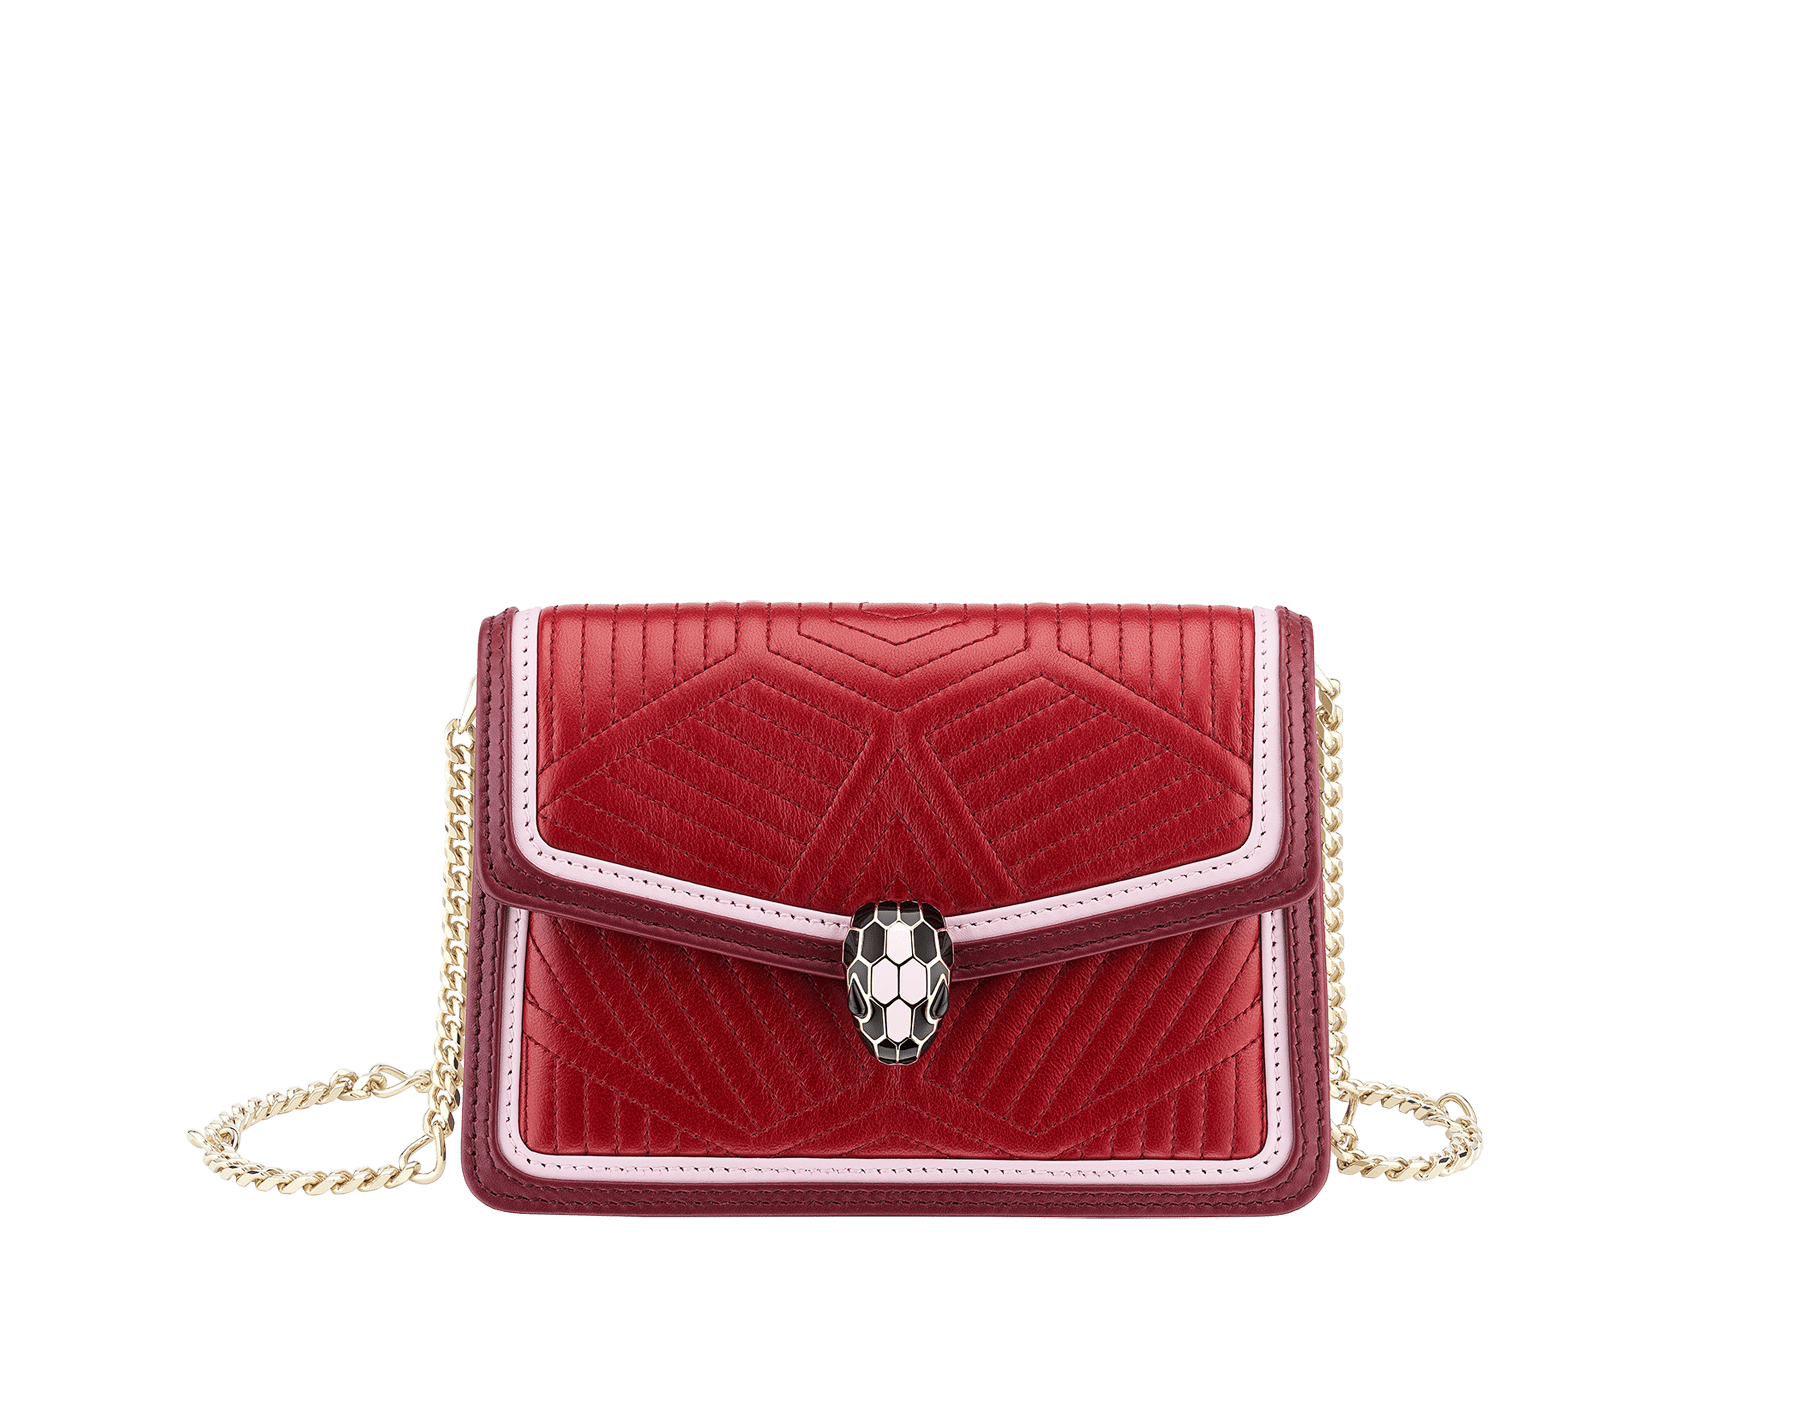 """""""Serpenti Diamond Blast"""" crossbody micro bag in ruby red quilted nappa leather body and Roman garnet calf leather frames. Iconic snakehead closure in light gold plated brass enriched with black and rosa di francia enamel and black onyx eyes. 288845 image 1"""